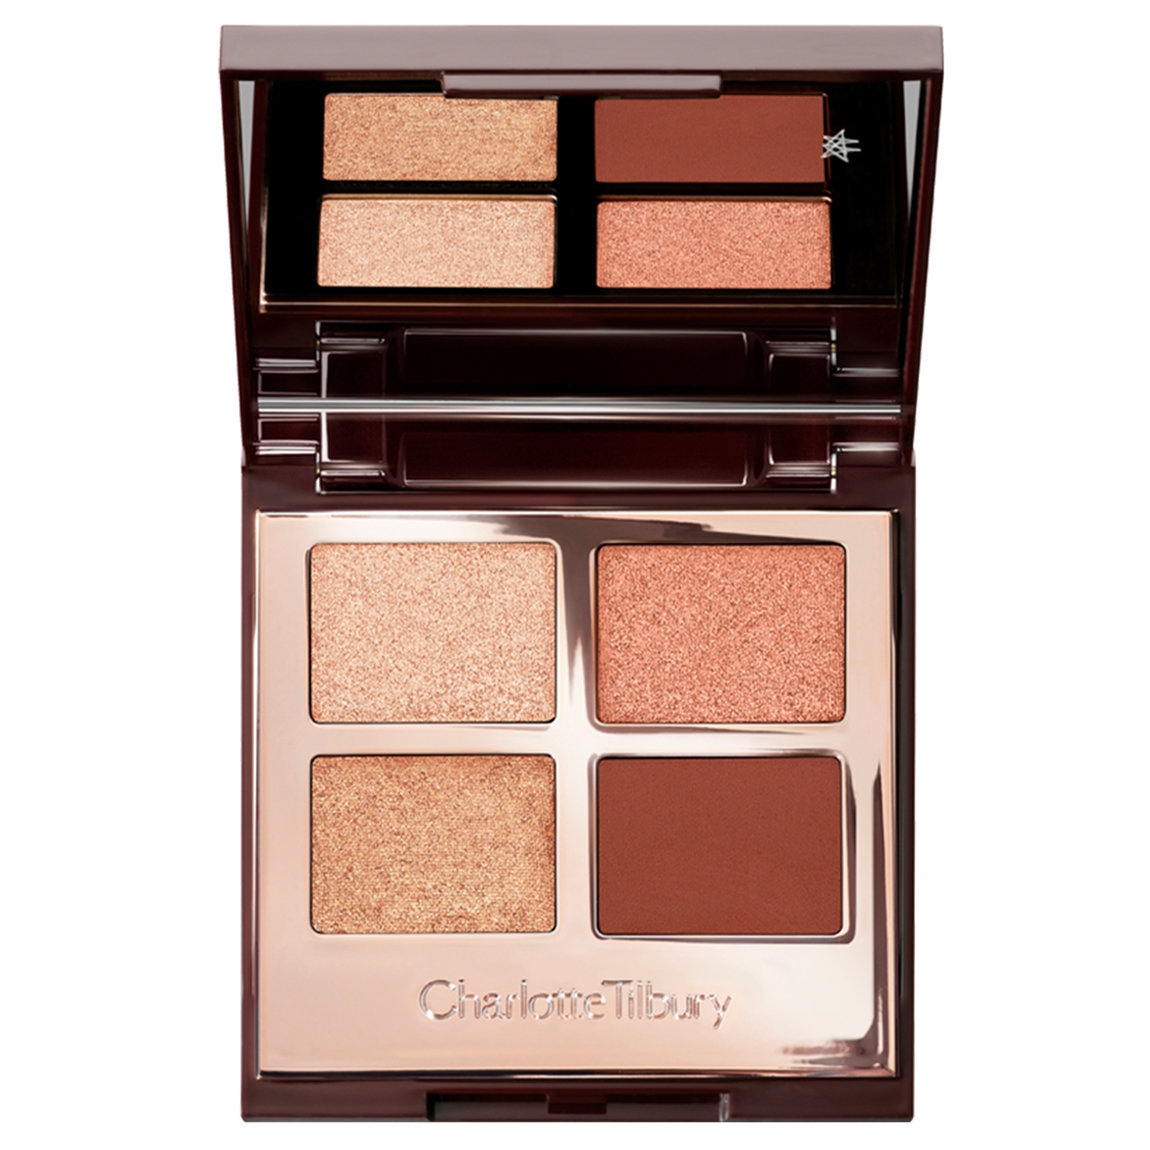 Charlotte Tilbury Luxury Palette Copper Charge alternative view 1 - product swatch.